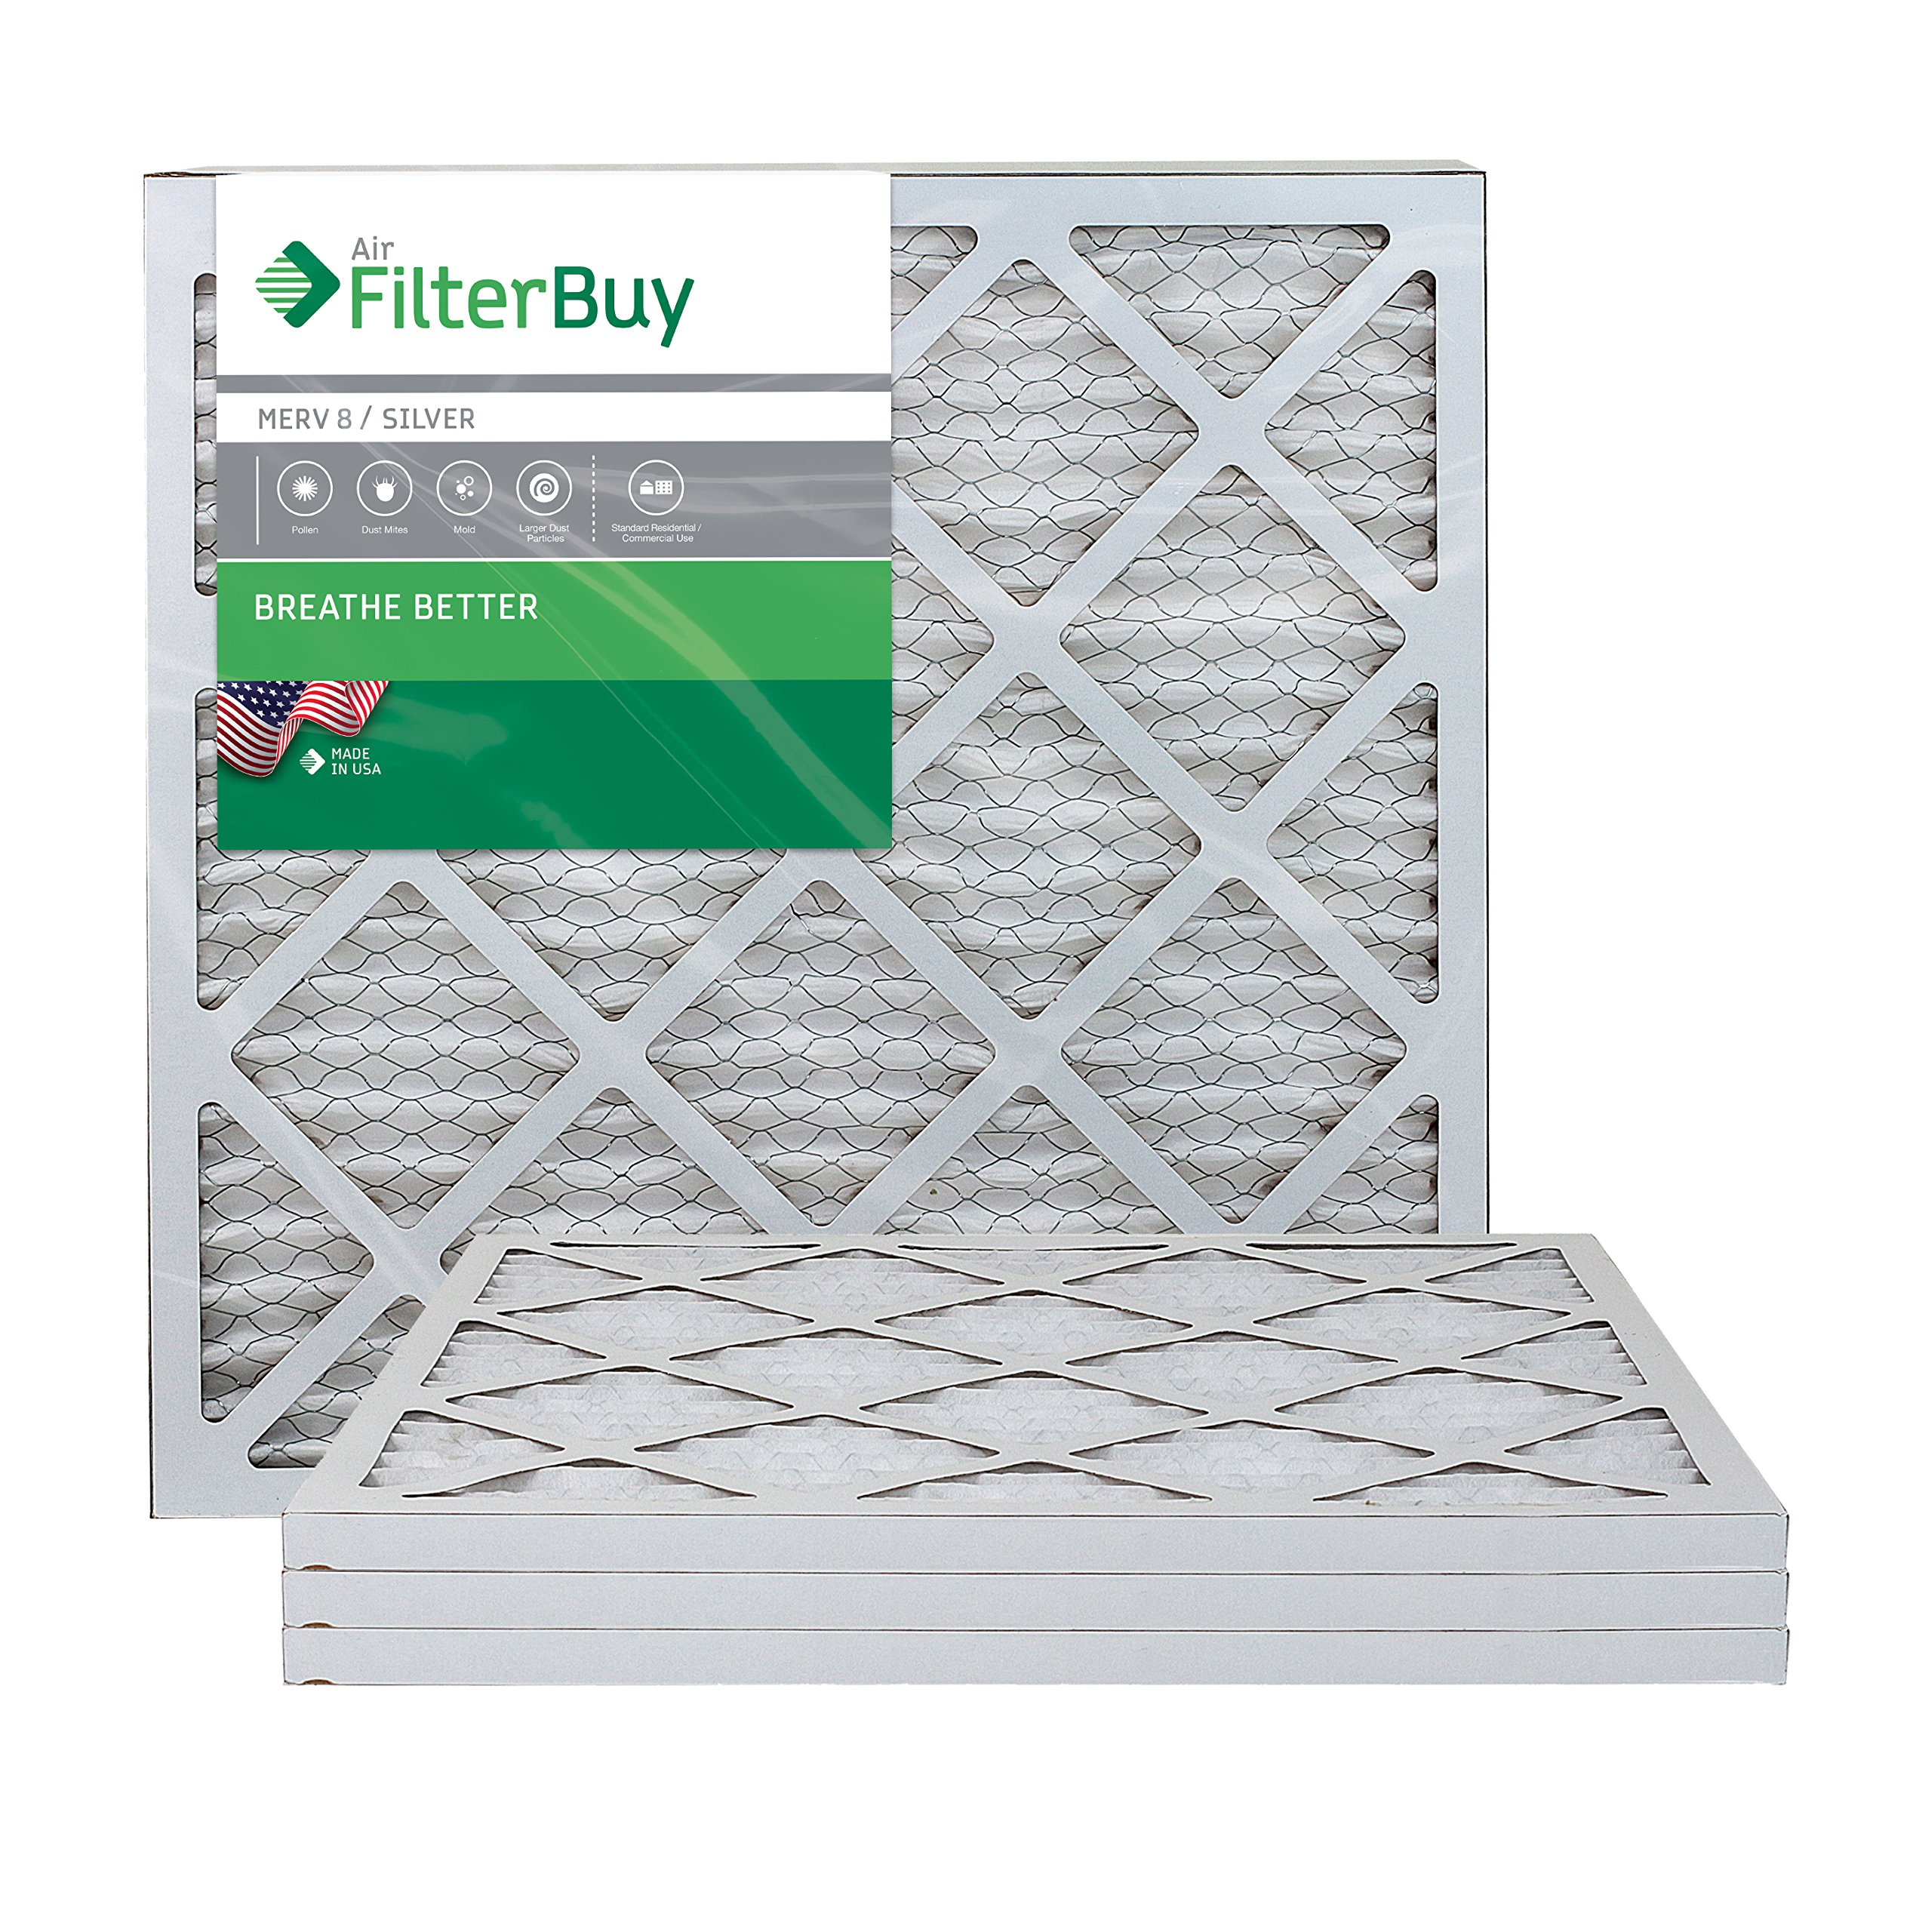 FilterBuy AFB Silver MERV 8 20x20x1 Pleated AC Furnace Air Filter.  Pack of 4 filters. 100% produced in the USA. by FilterBuy